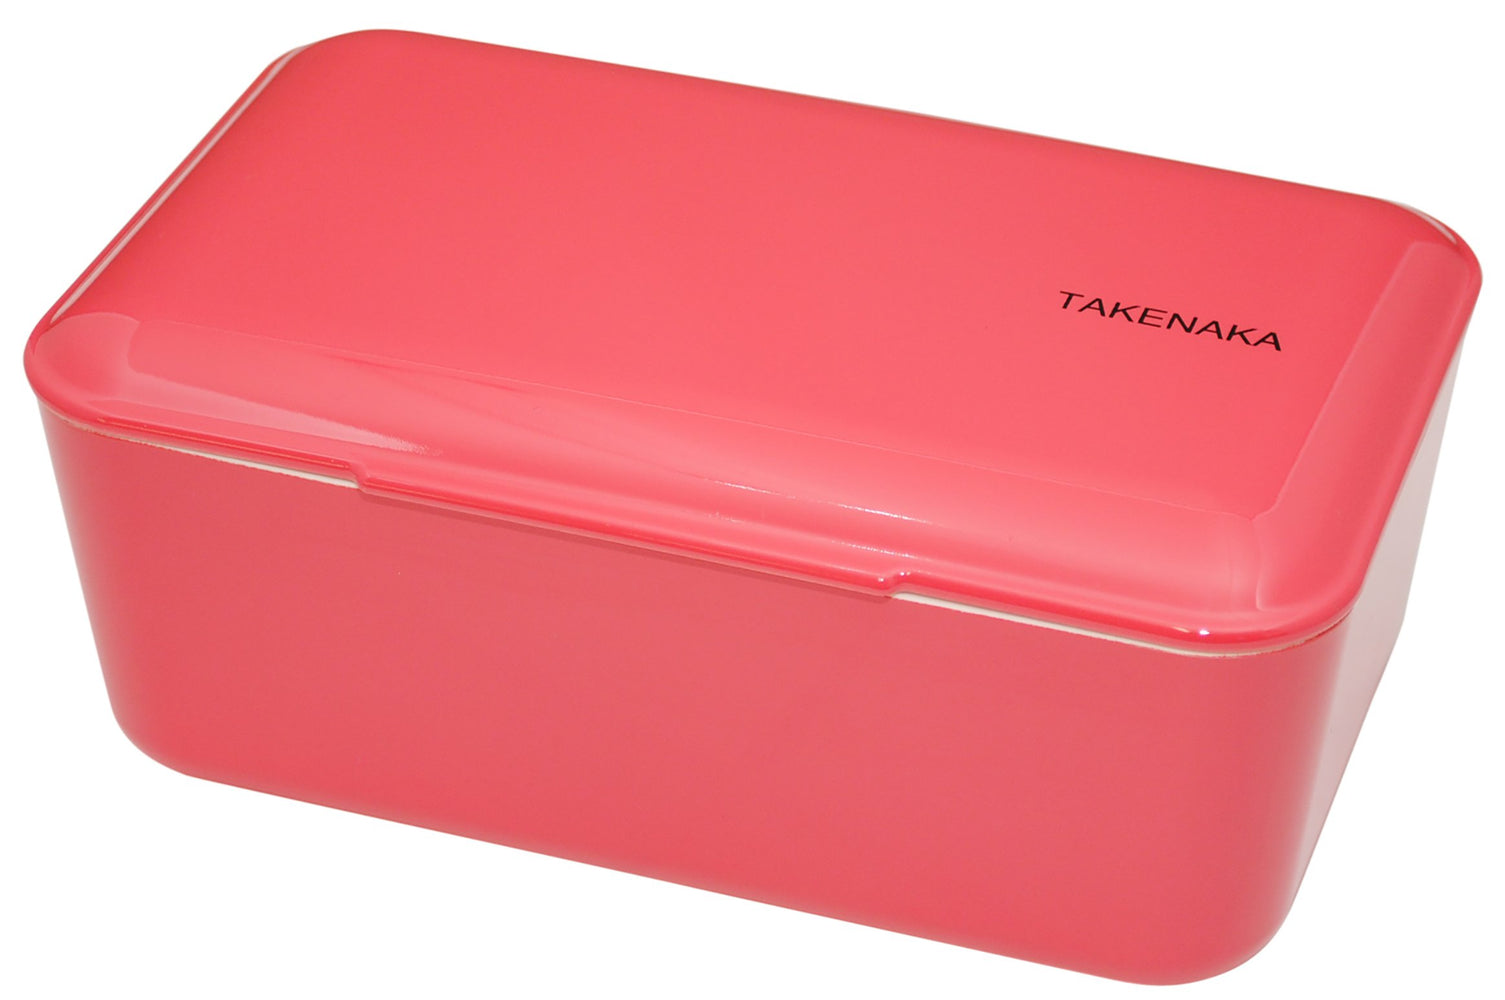 Expanded Bento Box | Rose by Takenaka - Bento&co Japanese Bento Lunch Boxes and Kitchenware Specialists